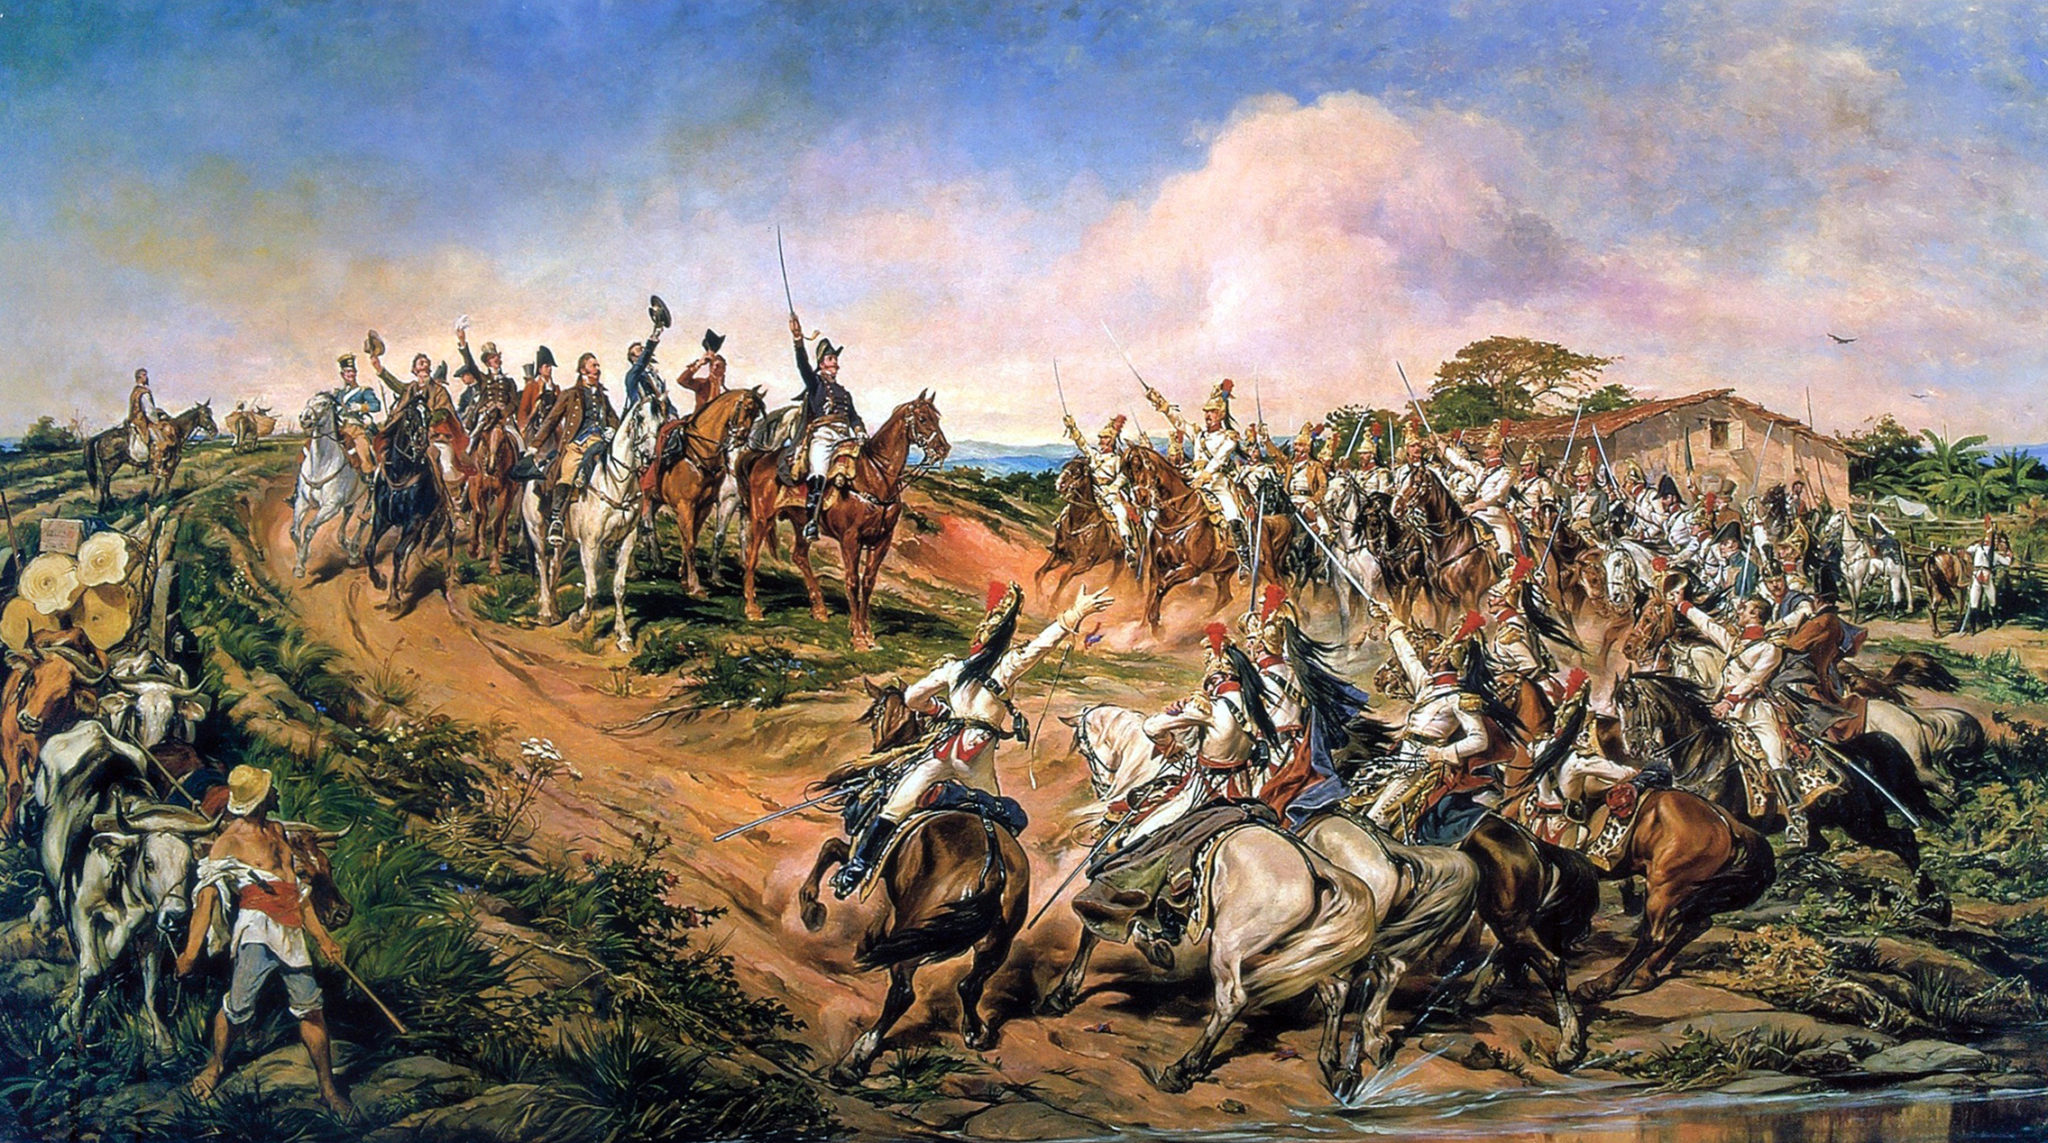 Independence of Brazil painting by Pedro Americo